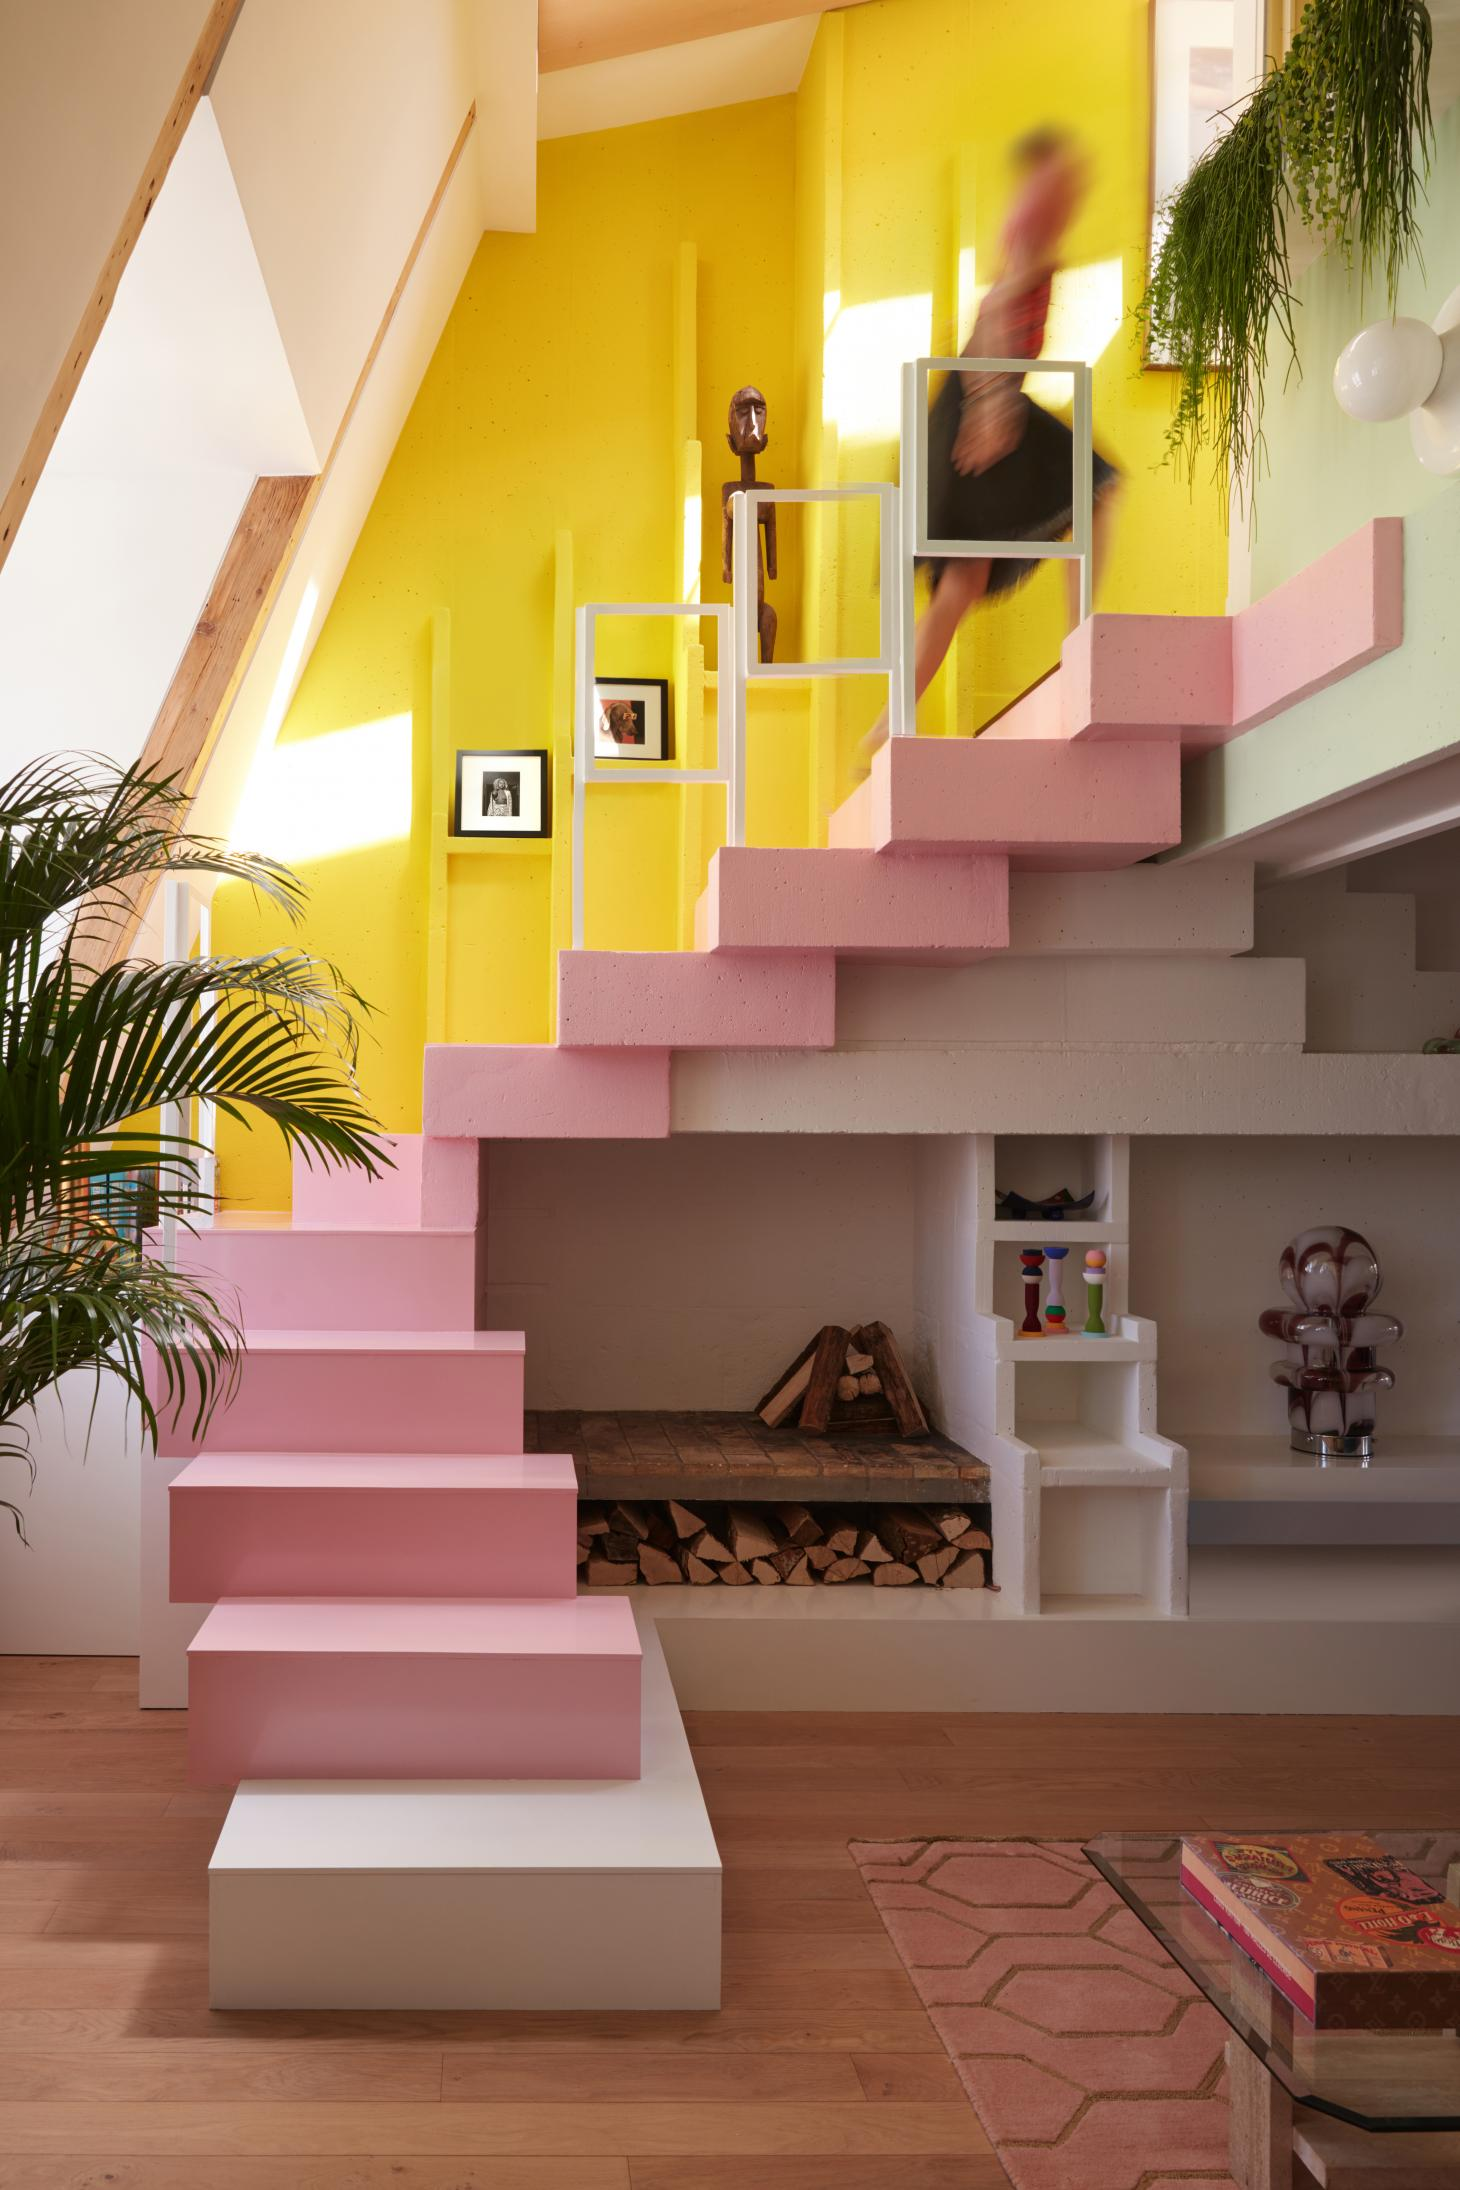 bespoke colourful staircase at apartment in Paris by architect Manuelle Gautrand